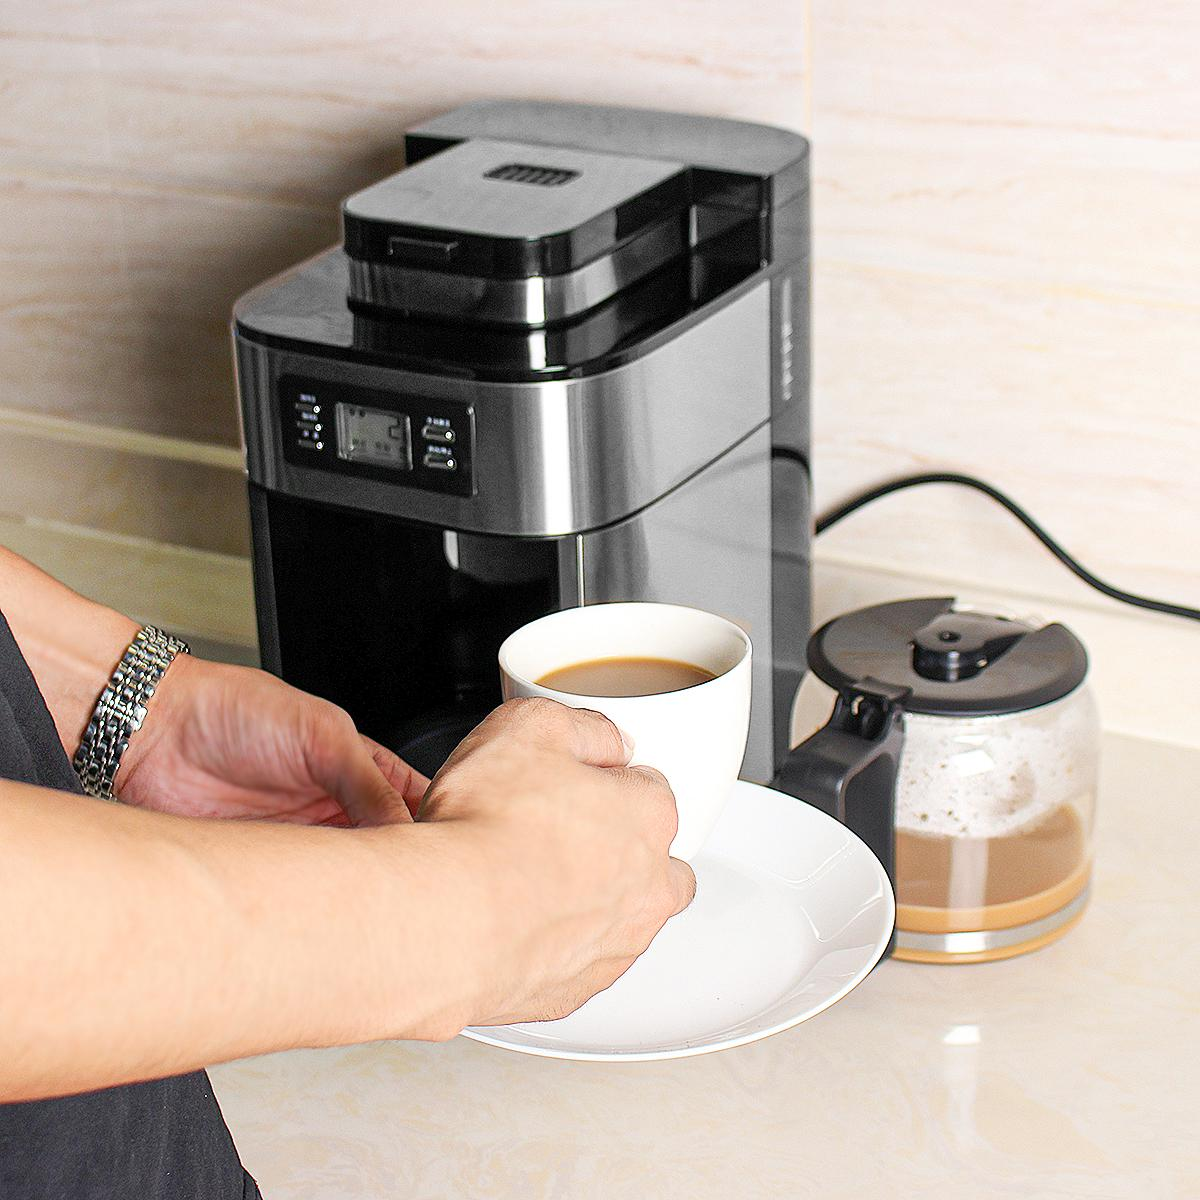 Electric Coffee Maker Machine Household Fully-Automatic Drip Coffee Maker 1200ml Tea Coffee Pot Home Kitchen Appliance